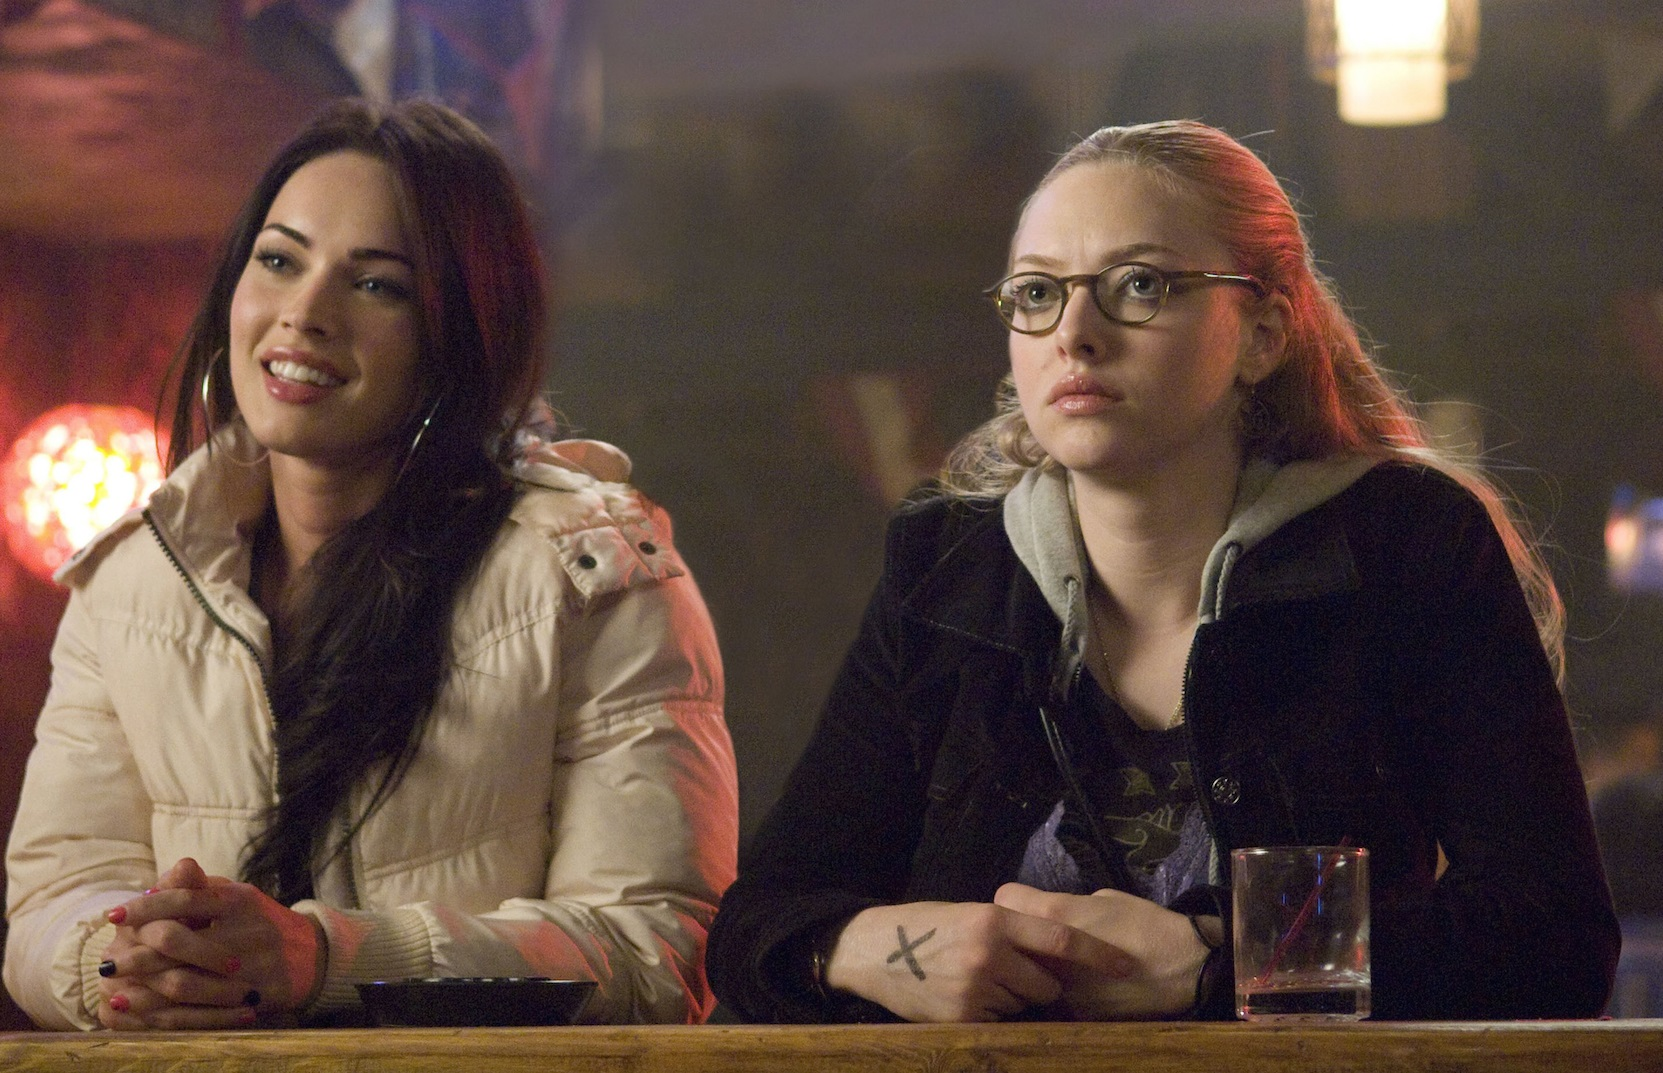 Best friends (l to r) Jennifer Check (Megan Fox) and Anita 'Needy' Lesnicki (Amanda Seyfried) in Jennifer's Body (2009)